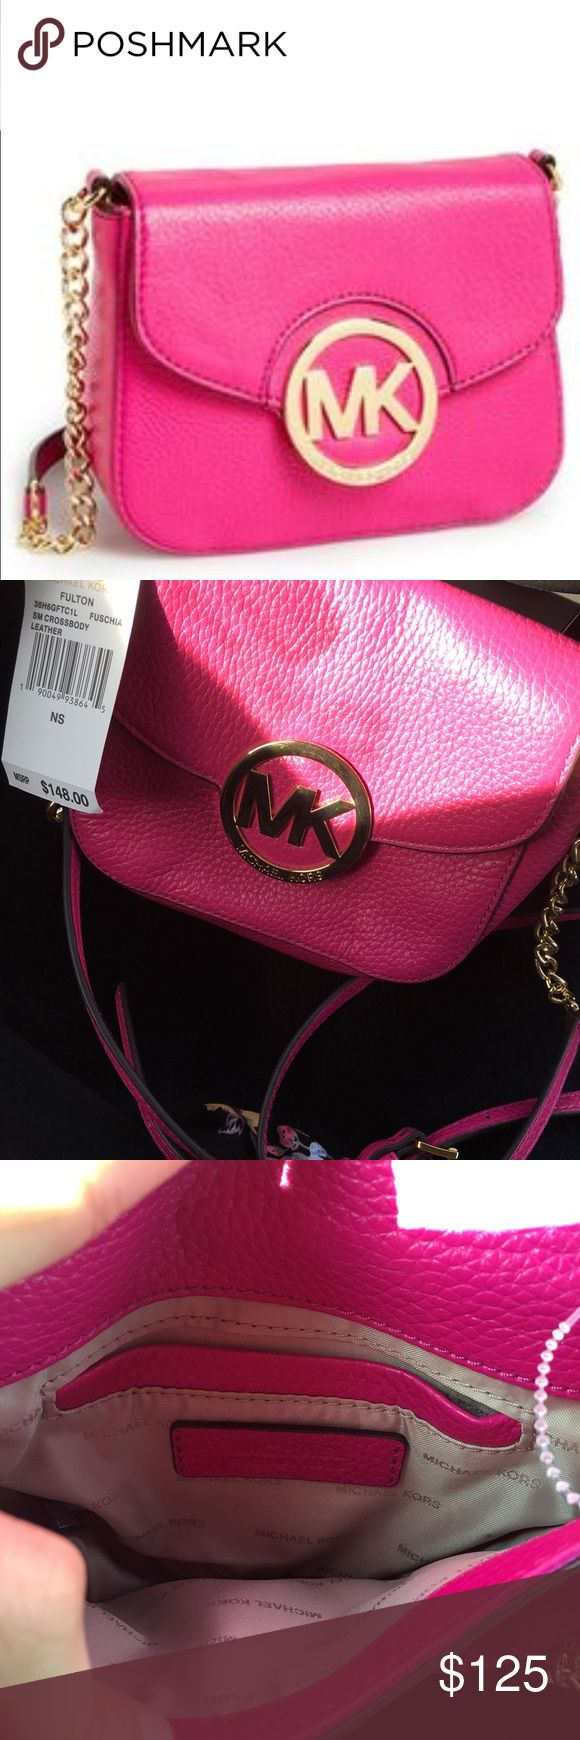 Brand New w Tags Michael Kors Hot Pink Fulton Brand New Michael Kors Hot Pink Fulton, retails over $150! Makes a perfect gift! Great for the holidays 💕 Michael Kors Bags Crossbody Bags